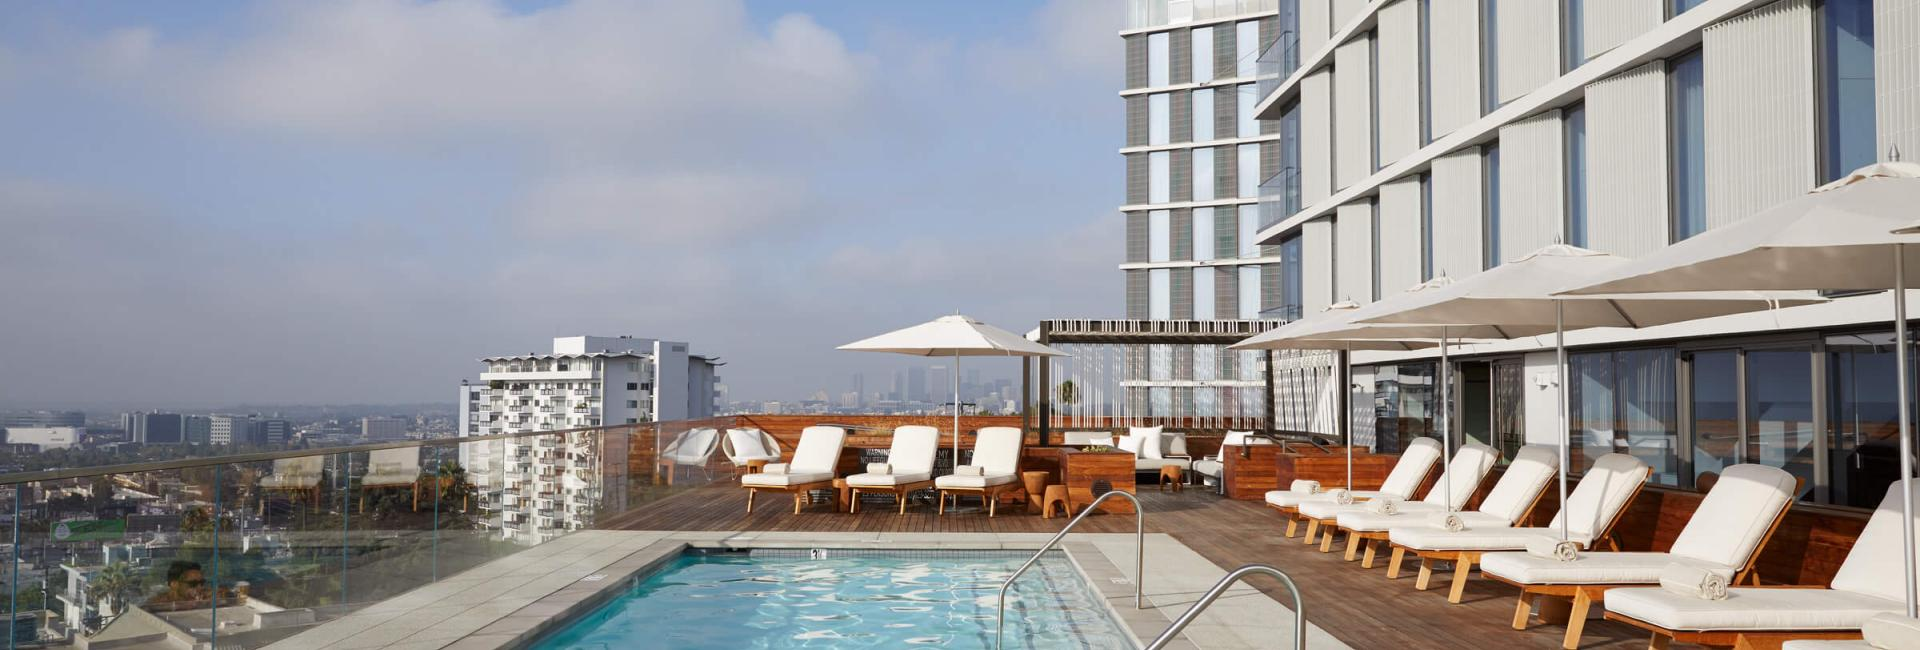 The rooftop swimming pool at the Jeremy Hotel West Hollywood